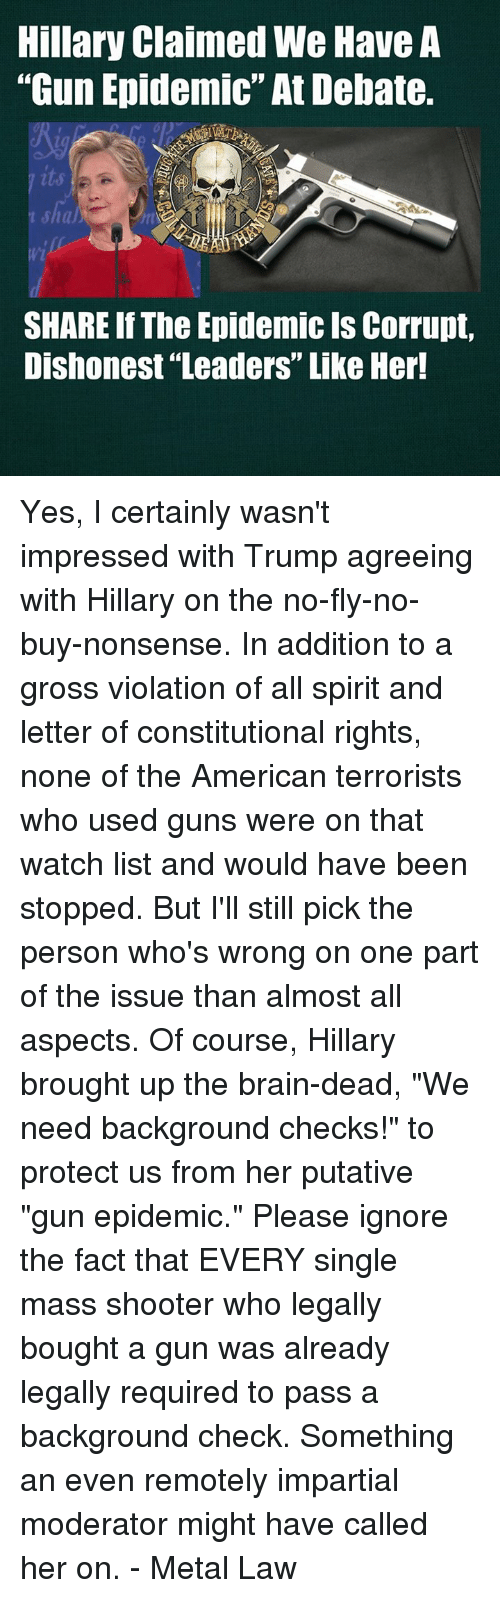 """impartial: Hillary Claimed We Have A  """"Gun Epidemic""""At Debate.  SHARE If The Epidemic ls Corrupt,  Dishonest Leaders"""" Like Her! Yes, I certainly wasn't impressed with Trump agreeing with Hillary on the no-fly-no-buy-nonsense.  In addition to a gross violation of all spirit and letter of constitutional rights, none of the American terrorists who used guns were on that watch list and would have been stopped. But I'll still pick the person who's wrong on one part of the issue than almost all aspects.  Of course, Hillary brought up the brain-dead, """"We need background checks!"""" to protect us from her putative """"gun epidemic.""""  Please ignore the fact that EVERY single mass shooter who legally bought a gun was already legally required to pass a background check.  Something an even remotely impartial moderator might have called her on. - Metal Law"""